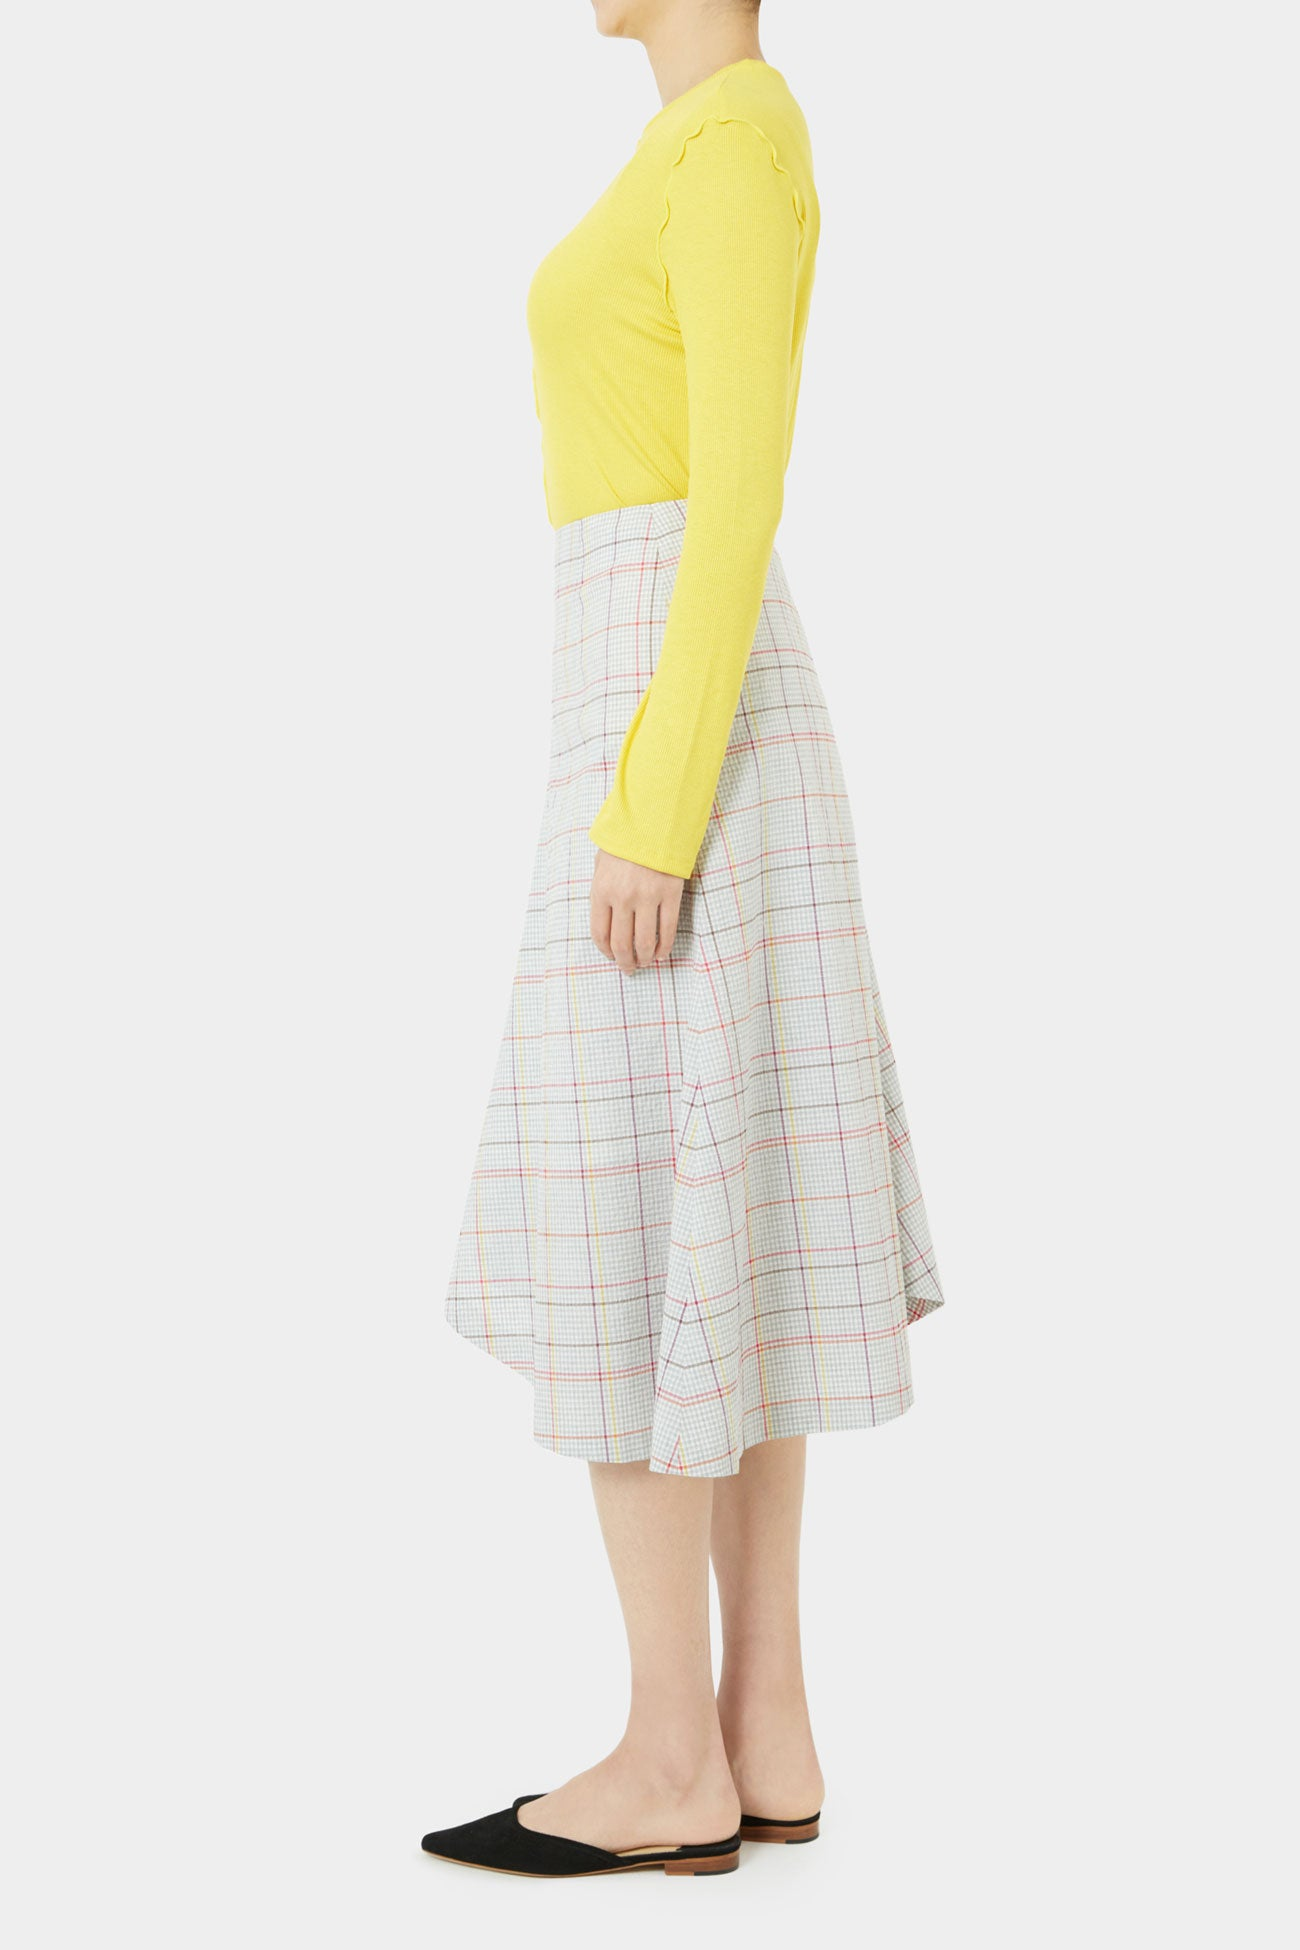 DAHLIA PLAID SKIRT